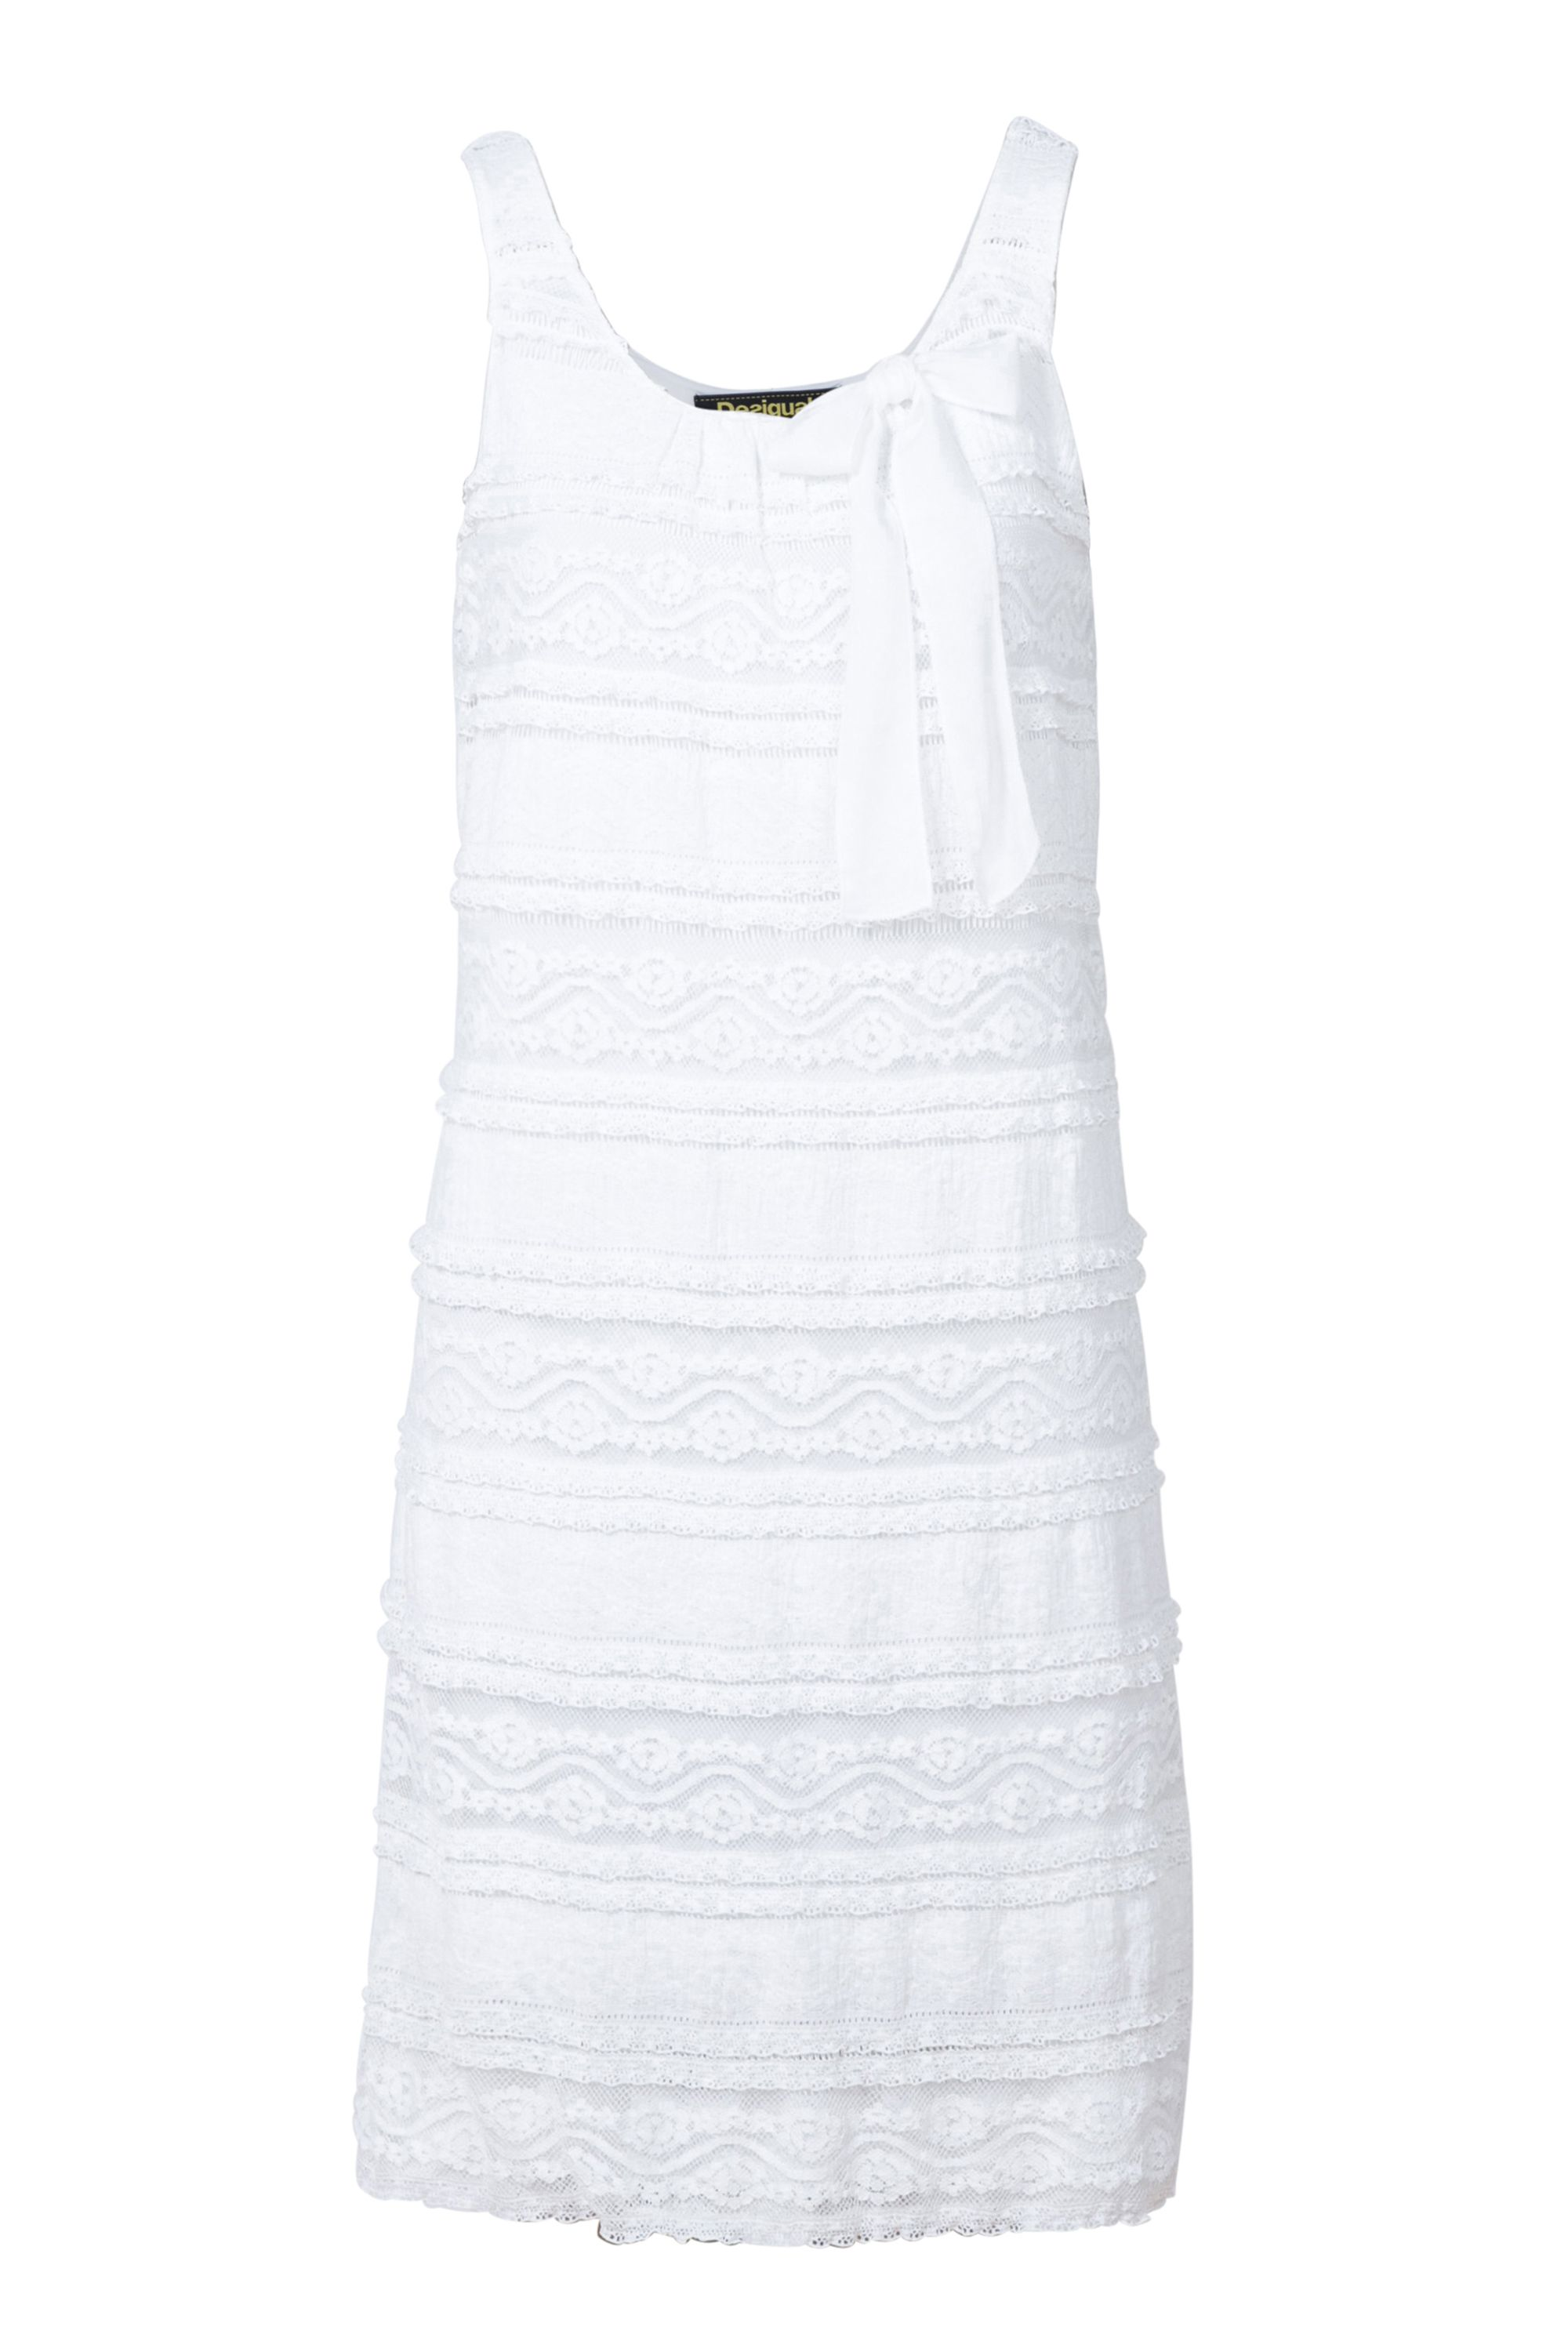 Desigual Dress Mayo, White